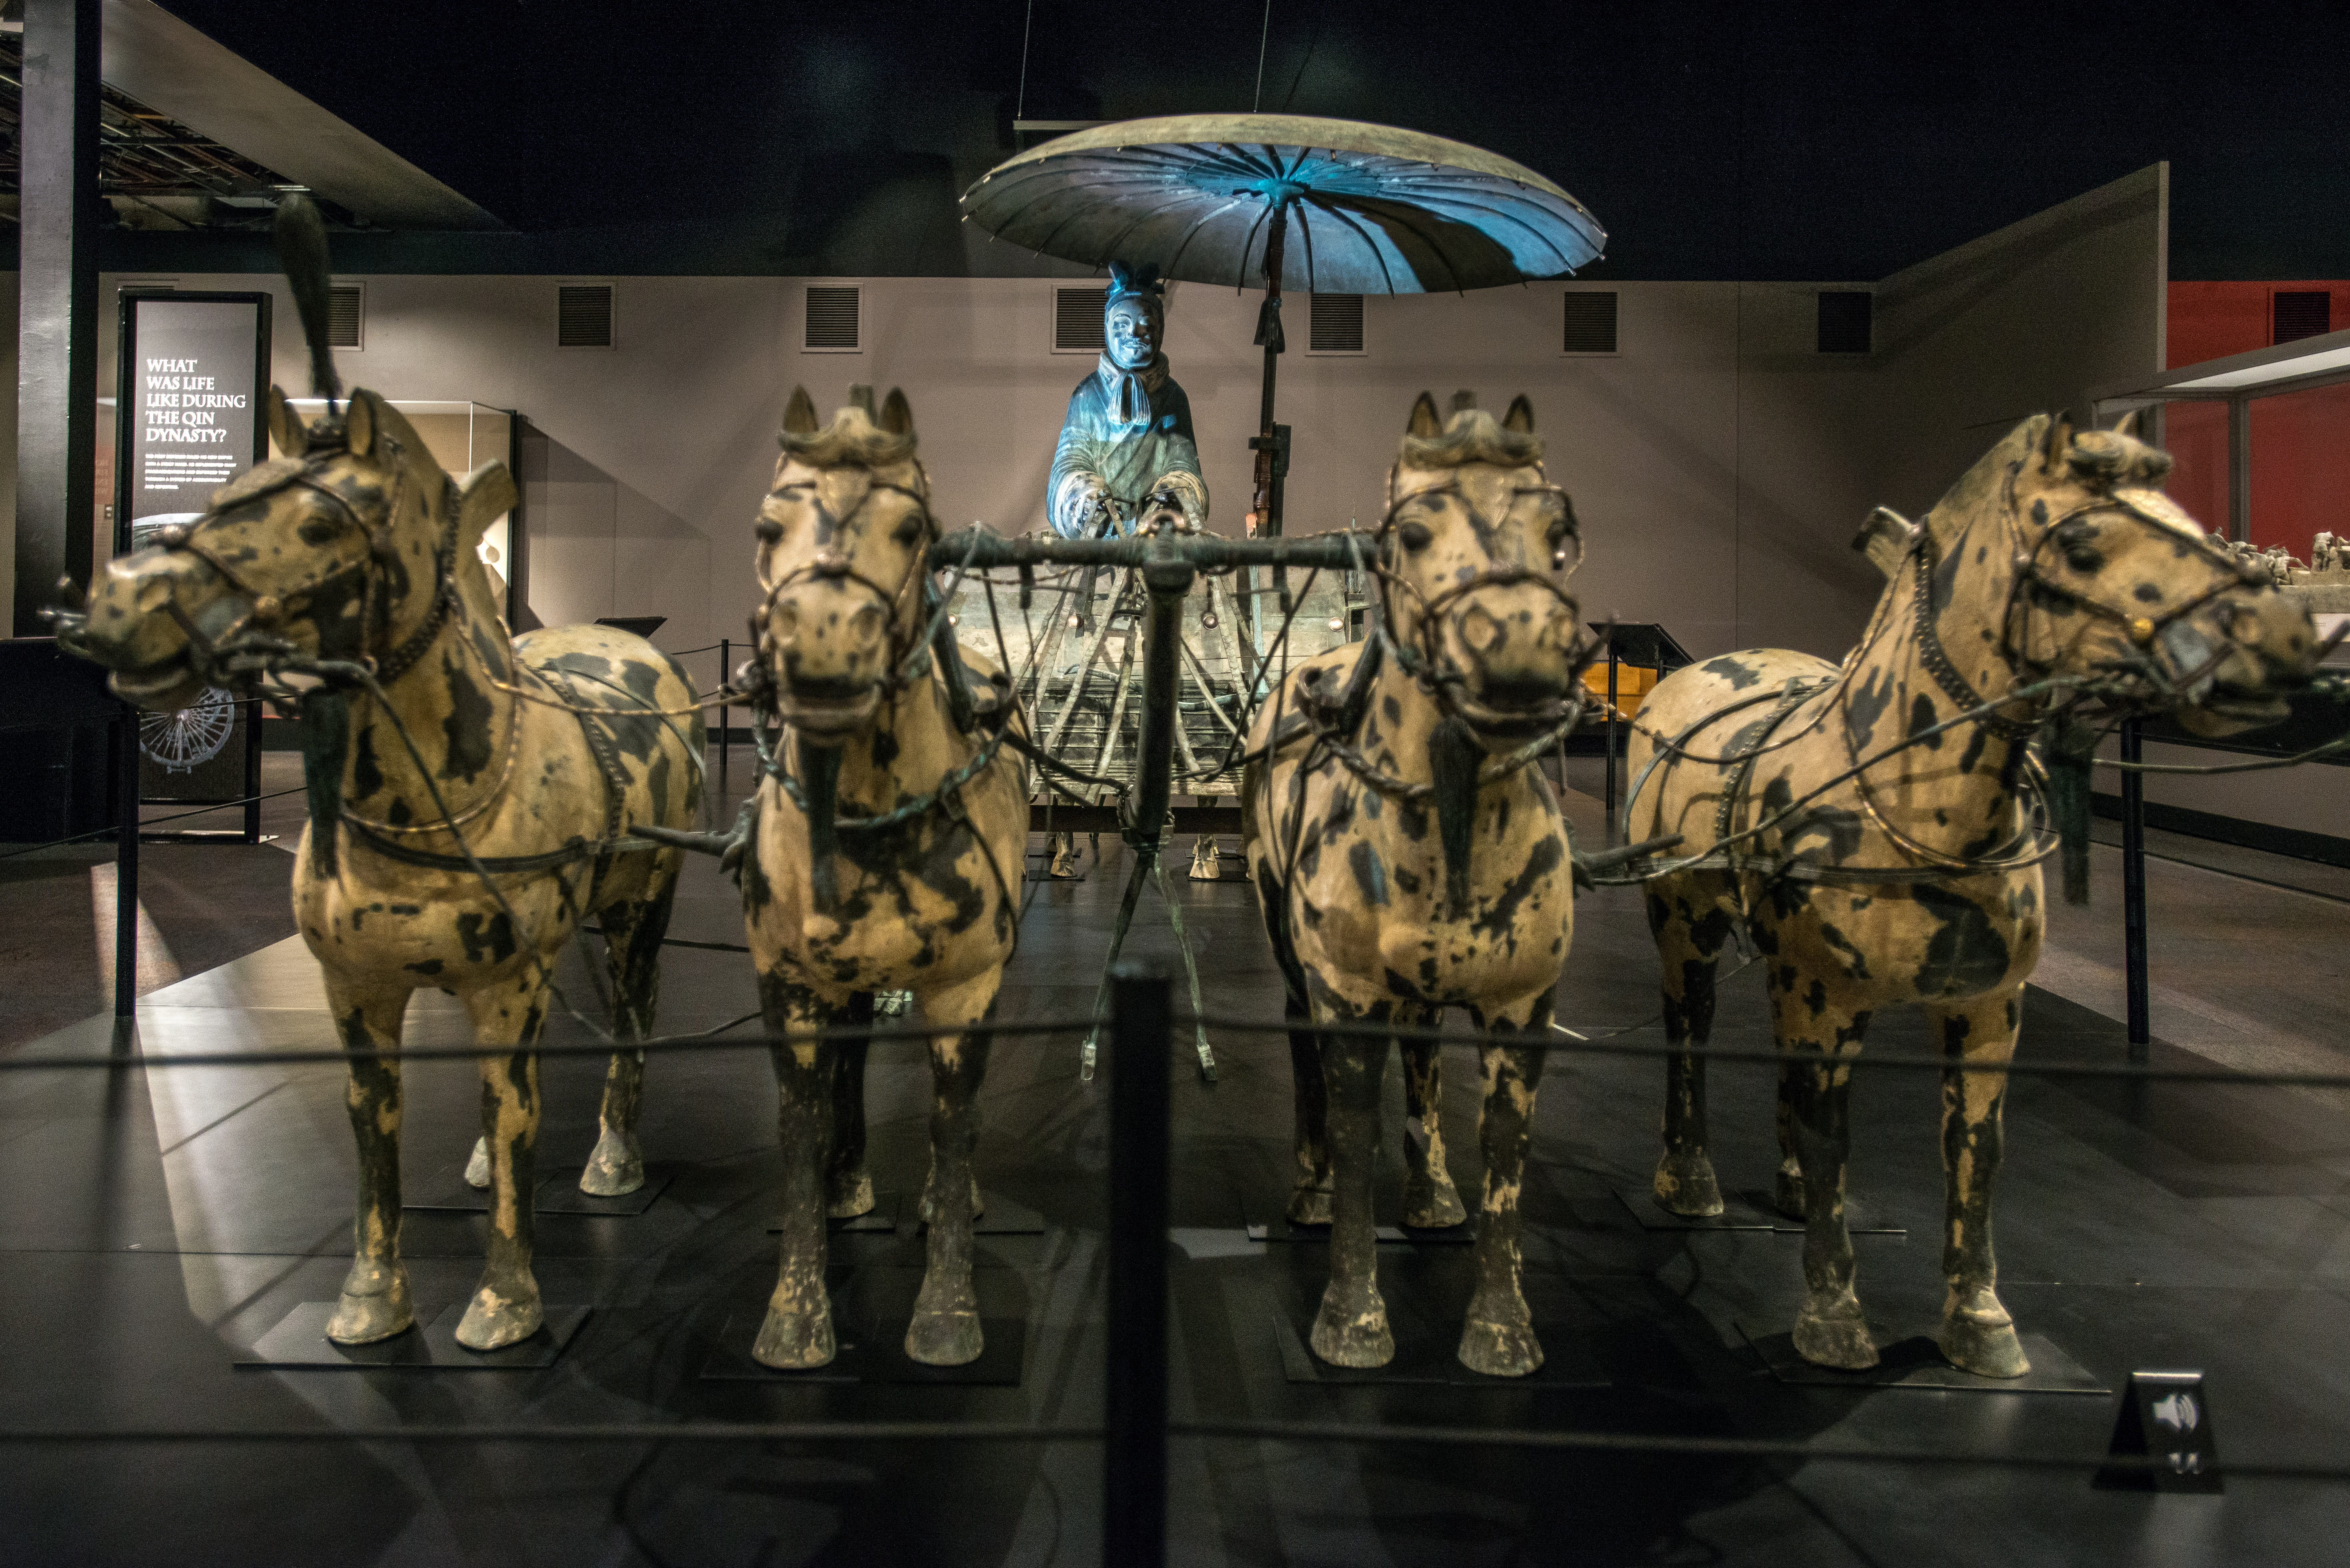 A replica of an elaborate bronze statue showing the emperor's chariot. It was one of the thousands of artworks, decorative items and everyday objects buried in the compound.